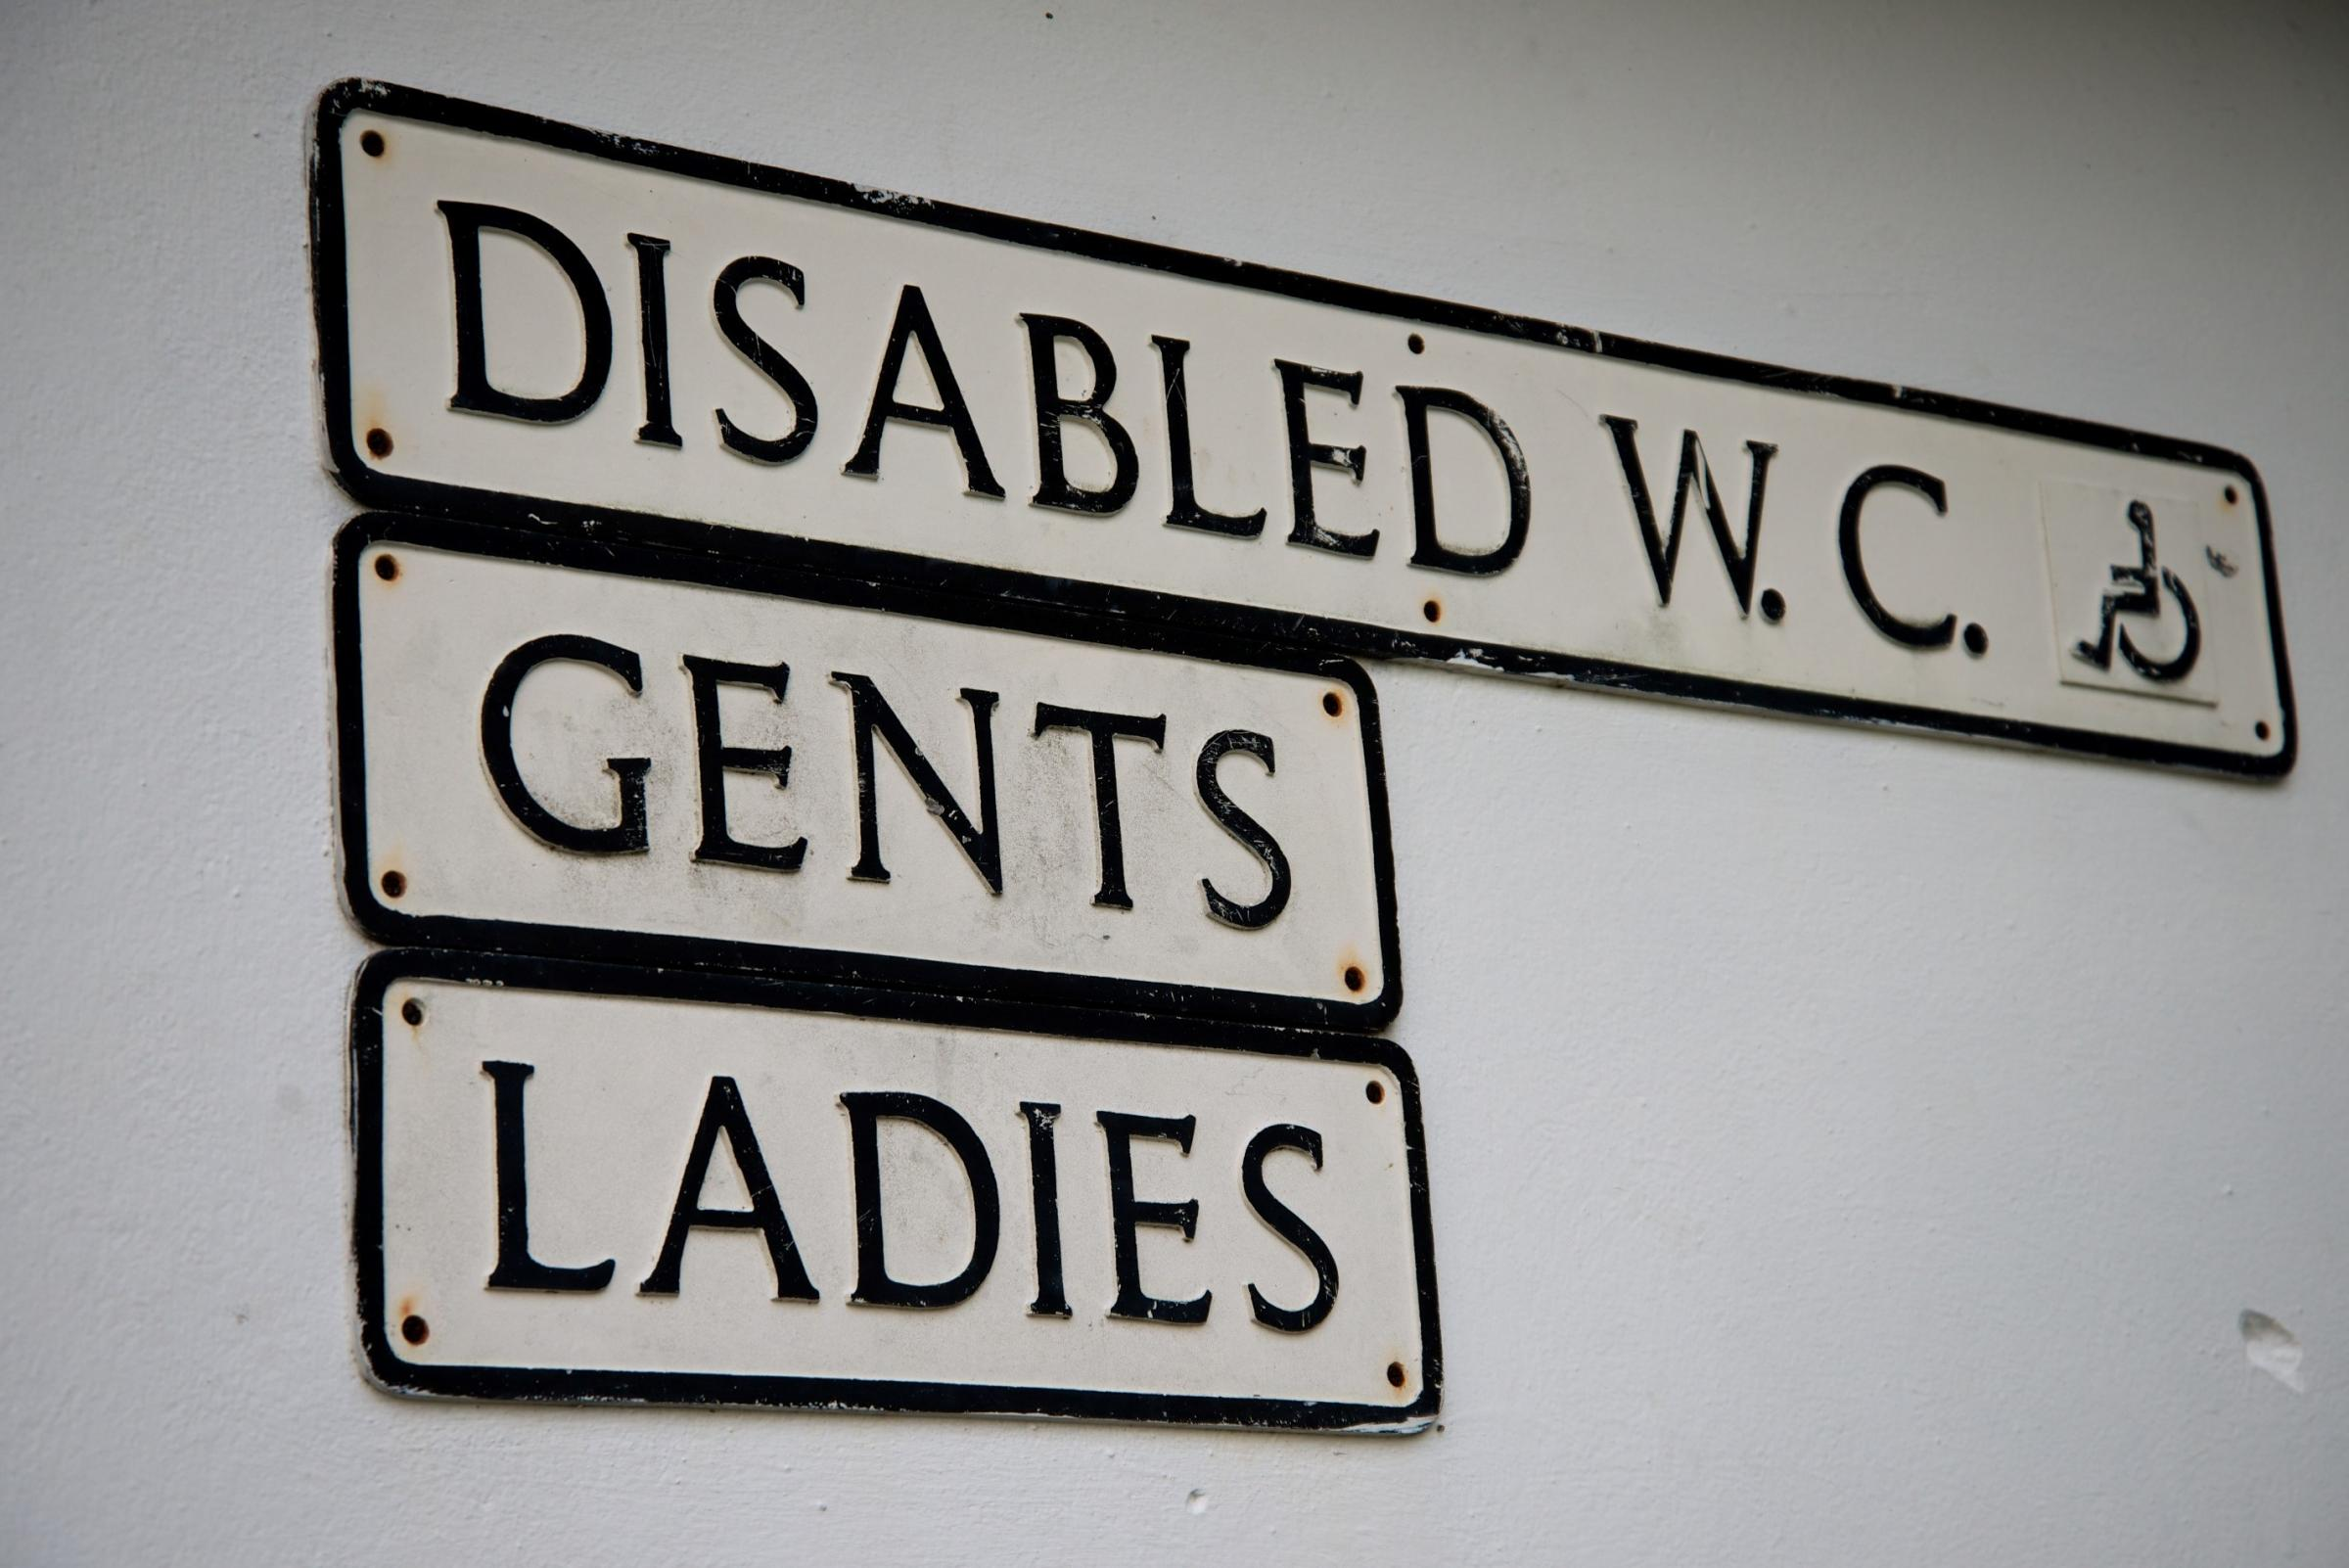 Public toilets are a necessity for the very young, elderly and disabled